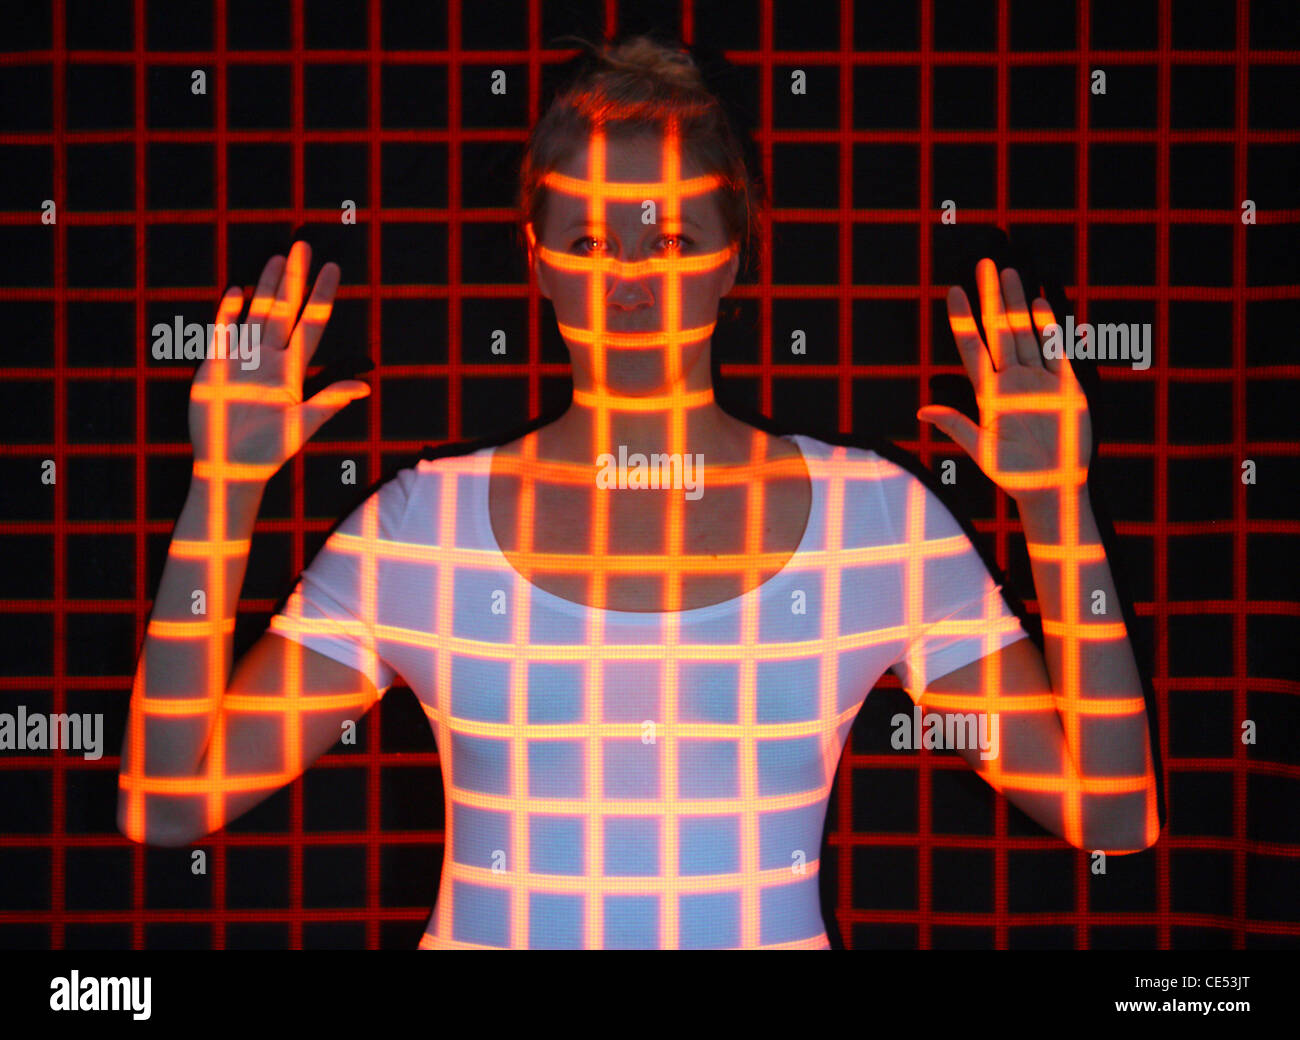 Biometric, symbol photo. Automatic face detection, by a laser scanner. 3D-model of a female face for generating - Stock Image